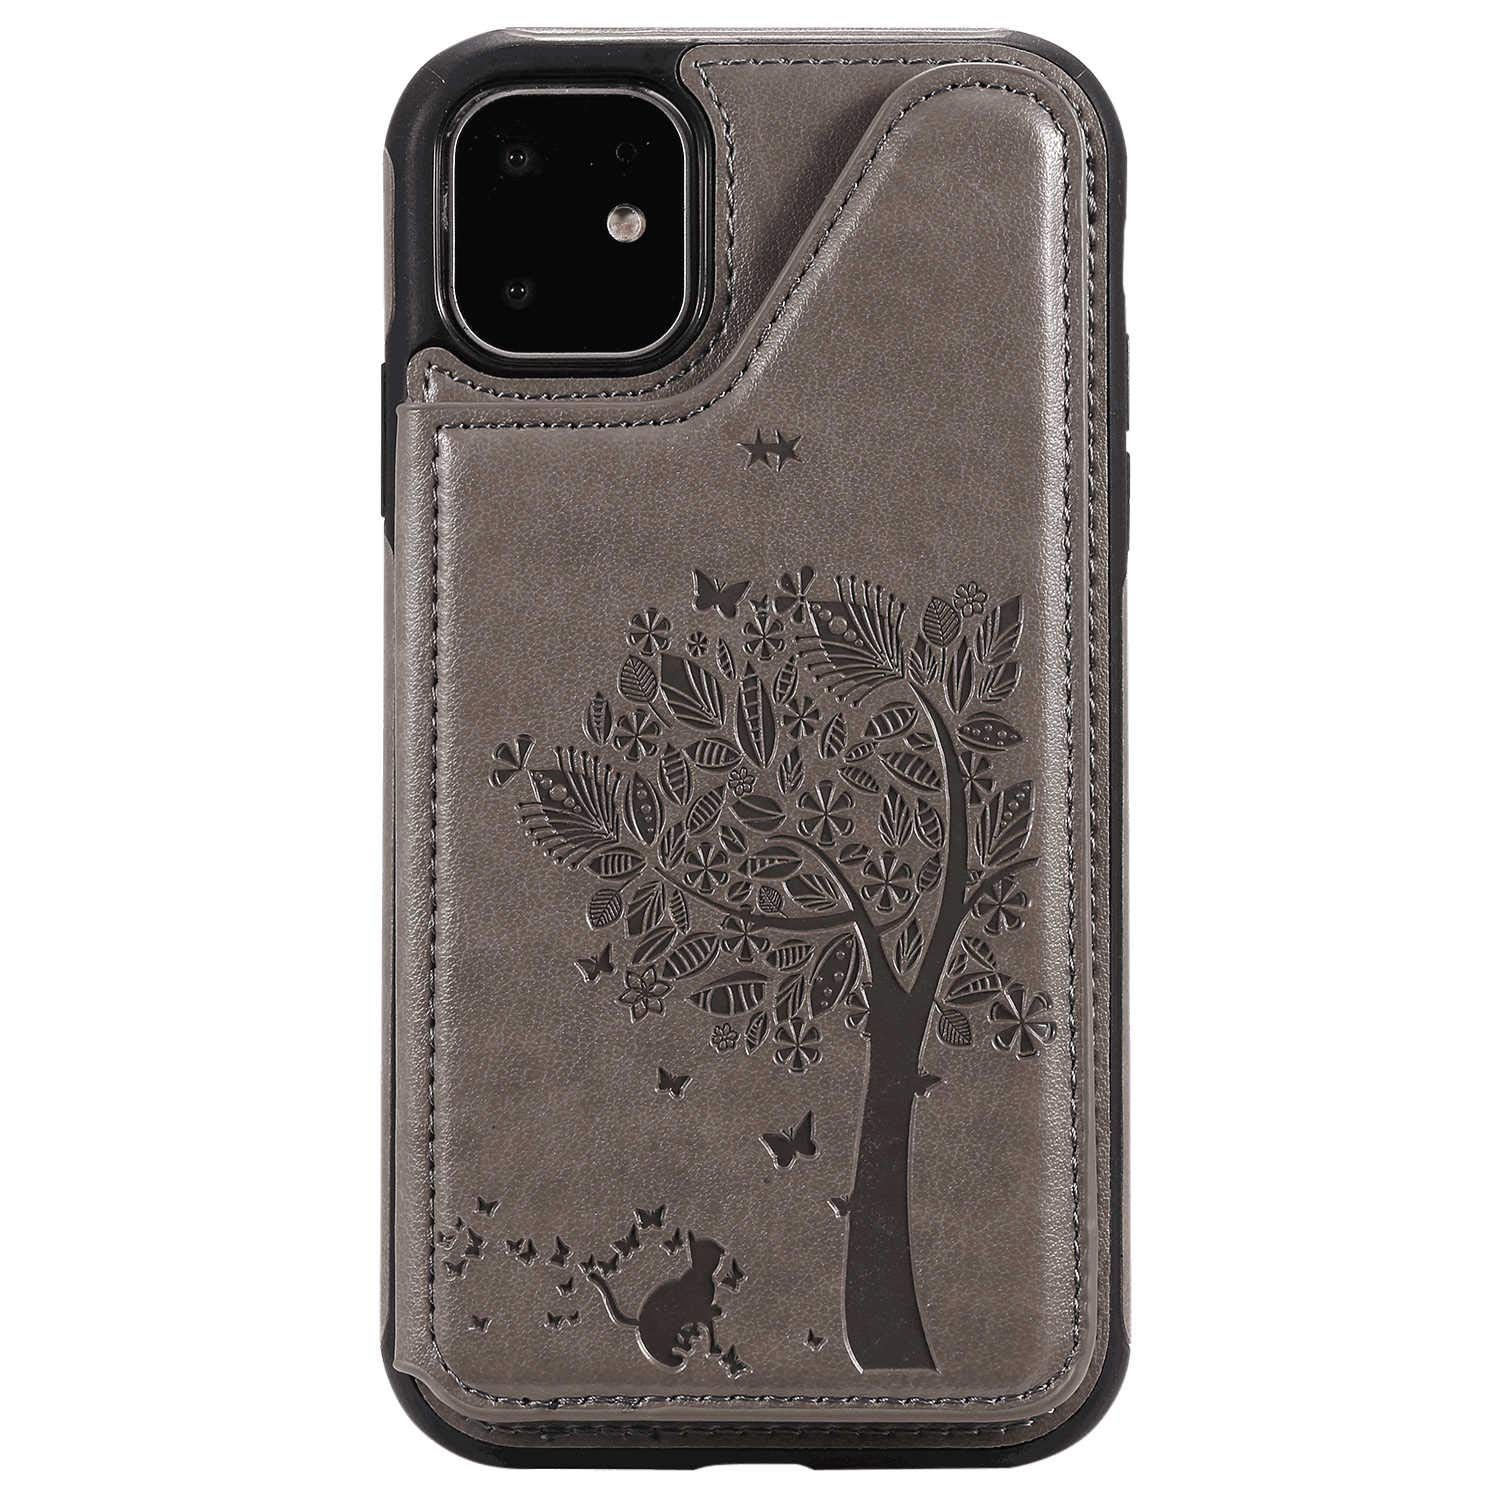 Shockproof Leather Flip Case for iPhone 7 Plus Business Wallet Cover Compatible with iPhone 7 Plus Smartphone